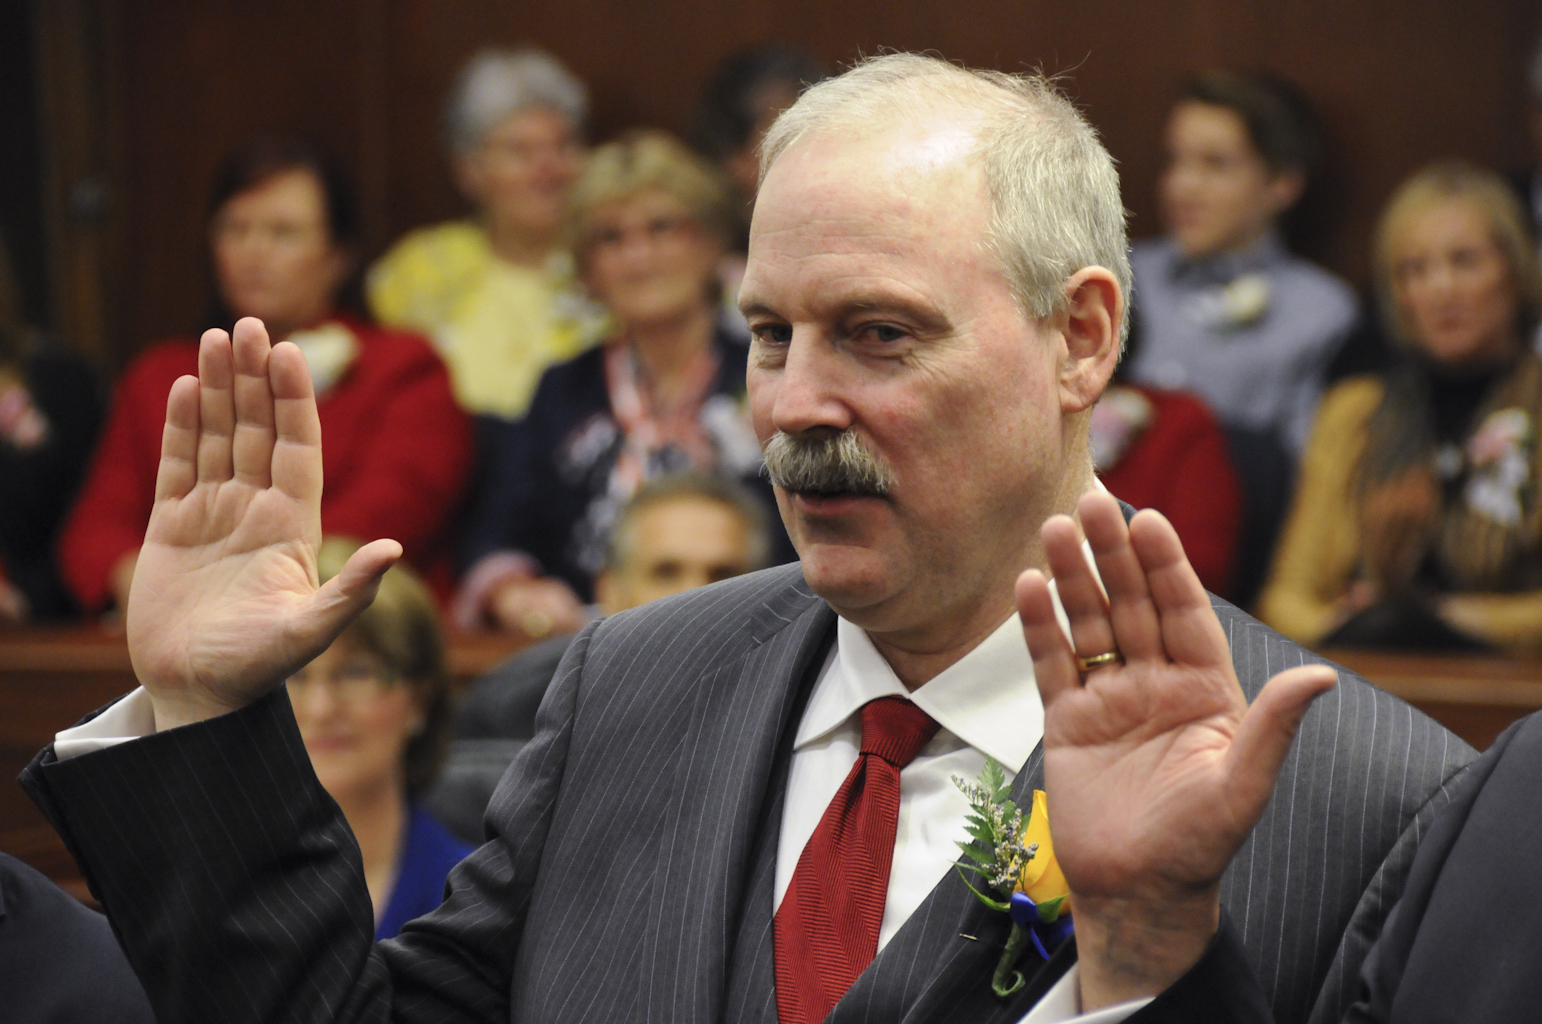 Senator Stedman taking the oath of office on the first day of the 28th Legislature